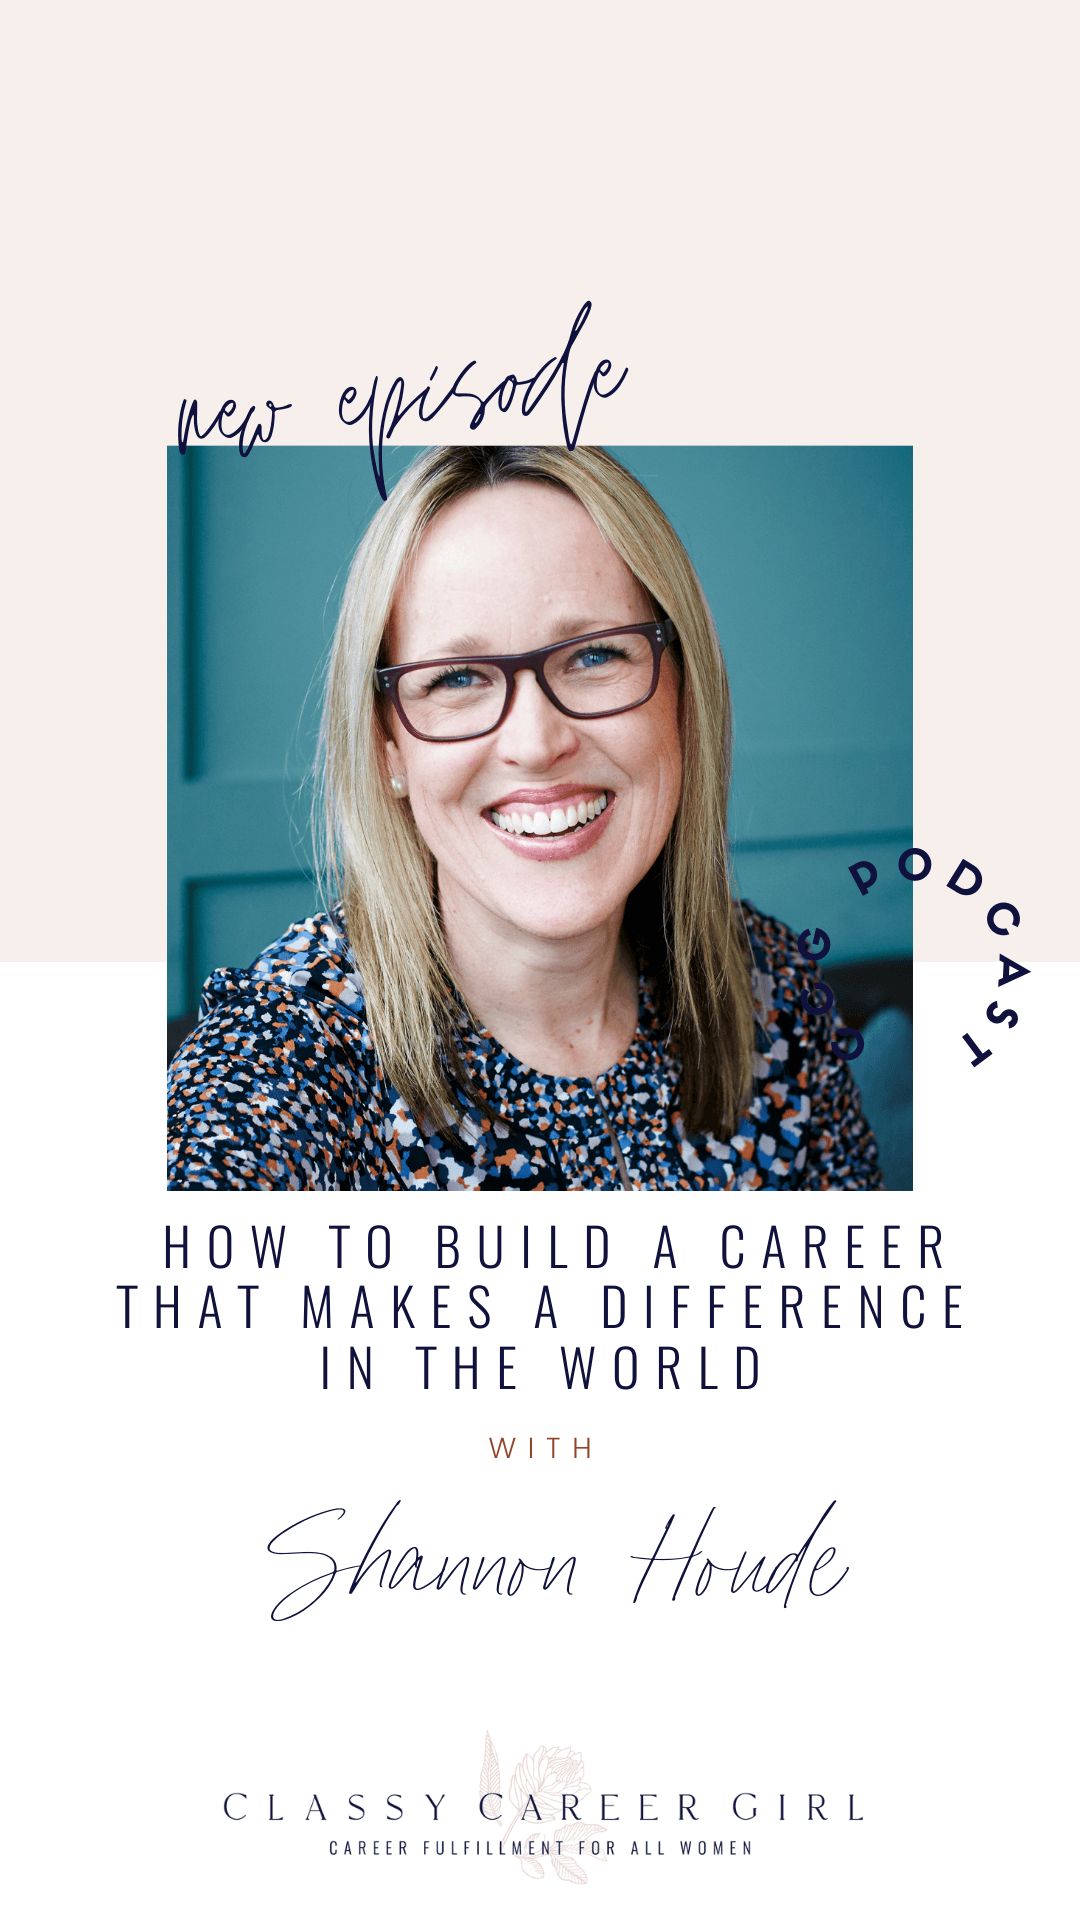 How To Build a Career That Makes a Difference in the World with Shannon Houde - CCG Pin